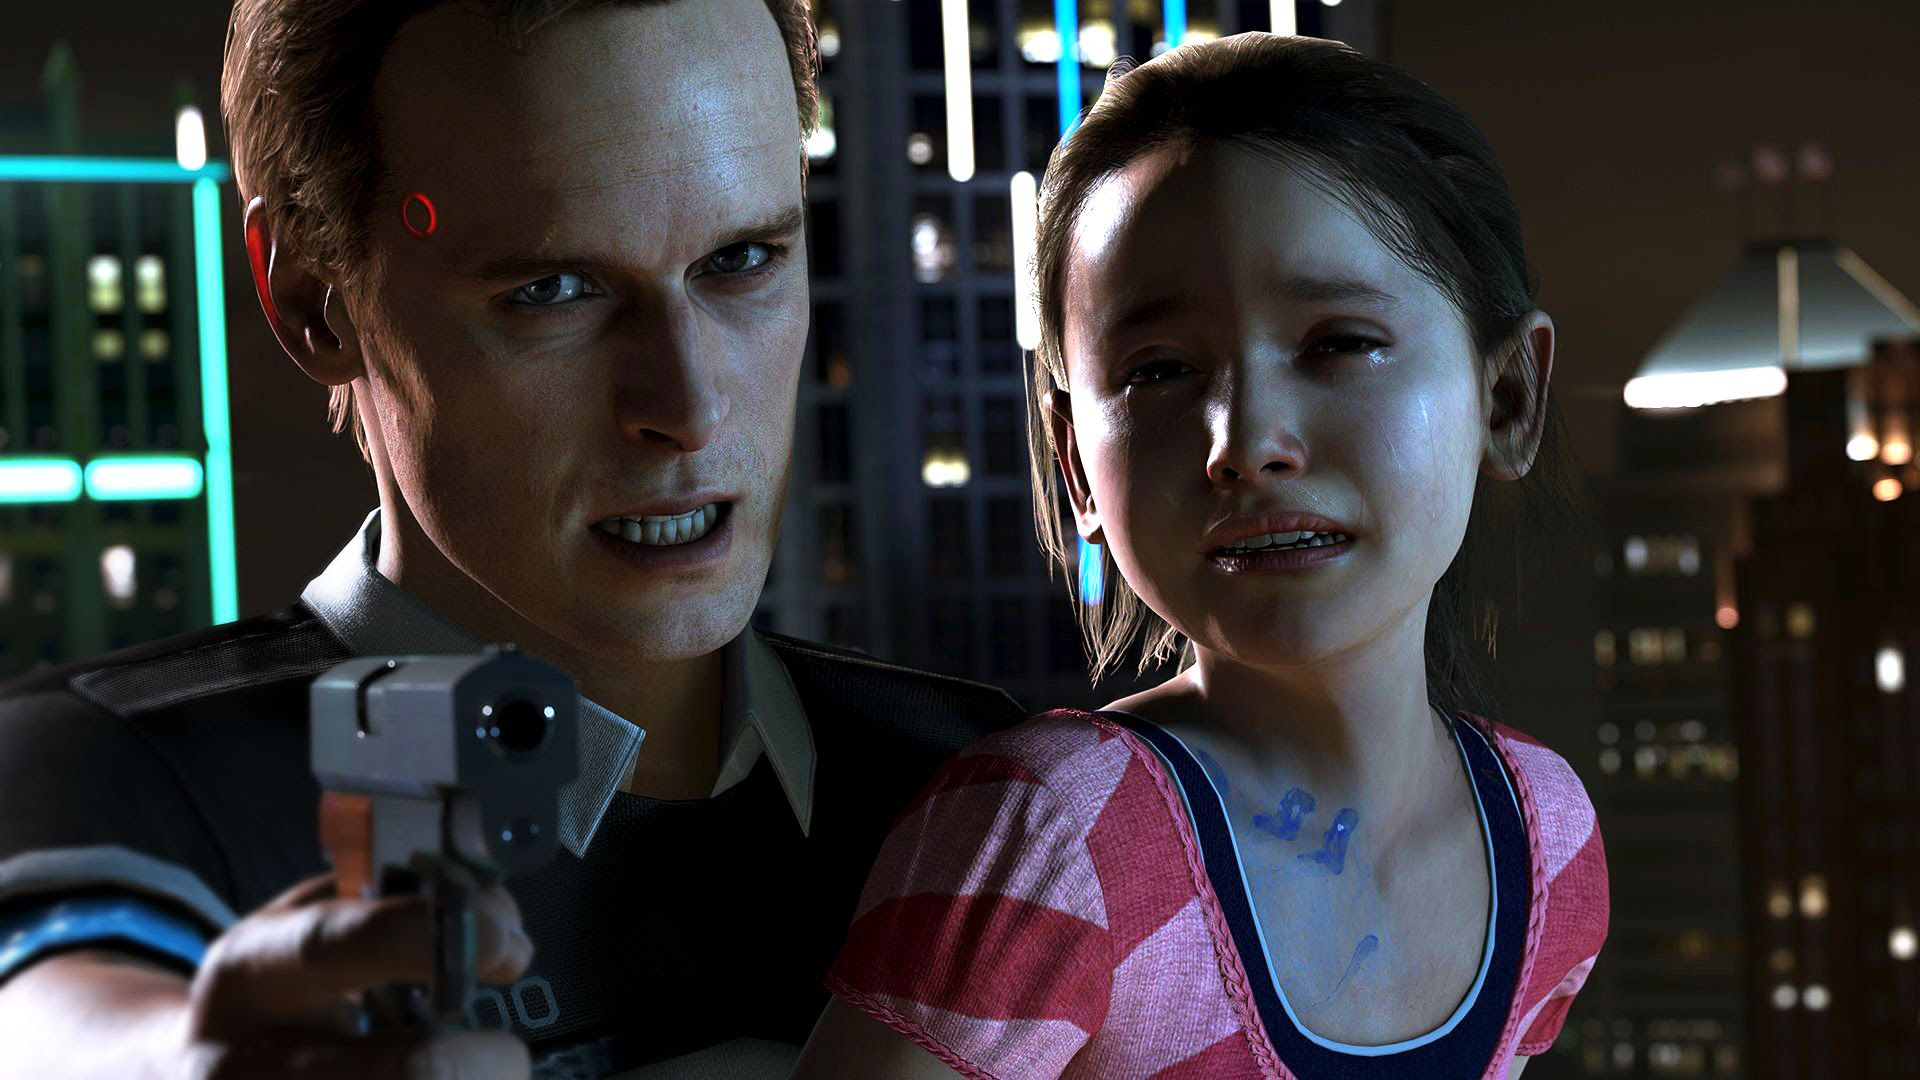 The official Detroit: Become Human Twitter account has some choice words for Xbox fans screenshot